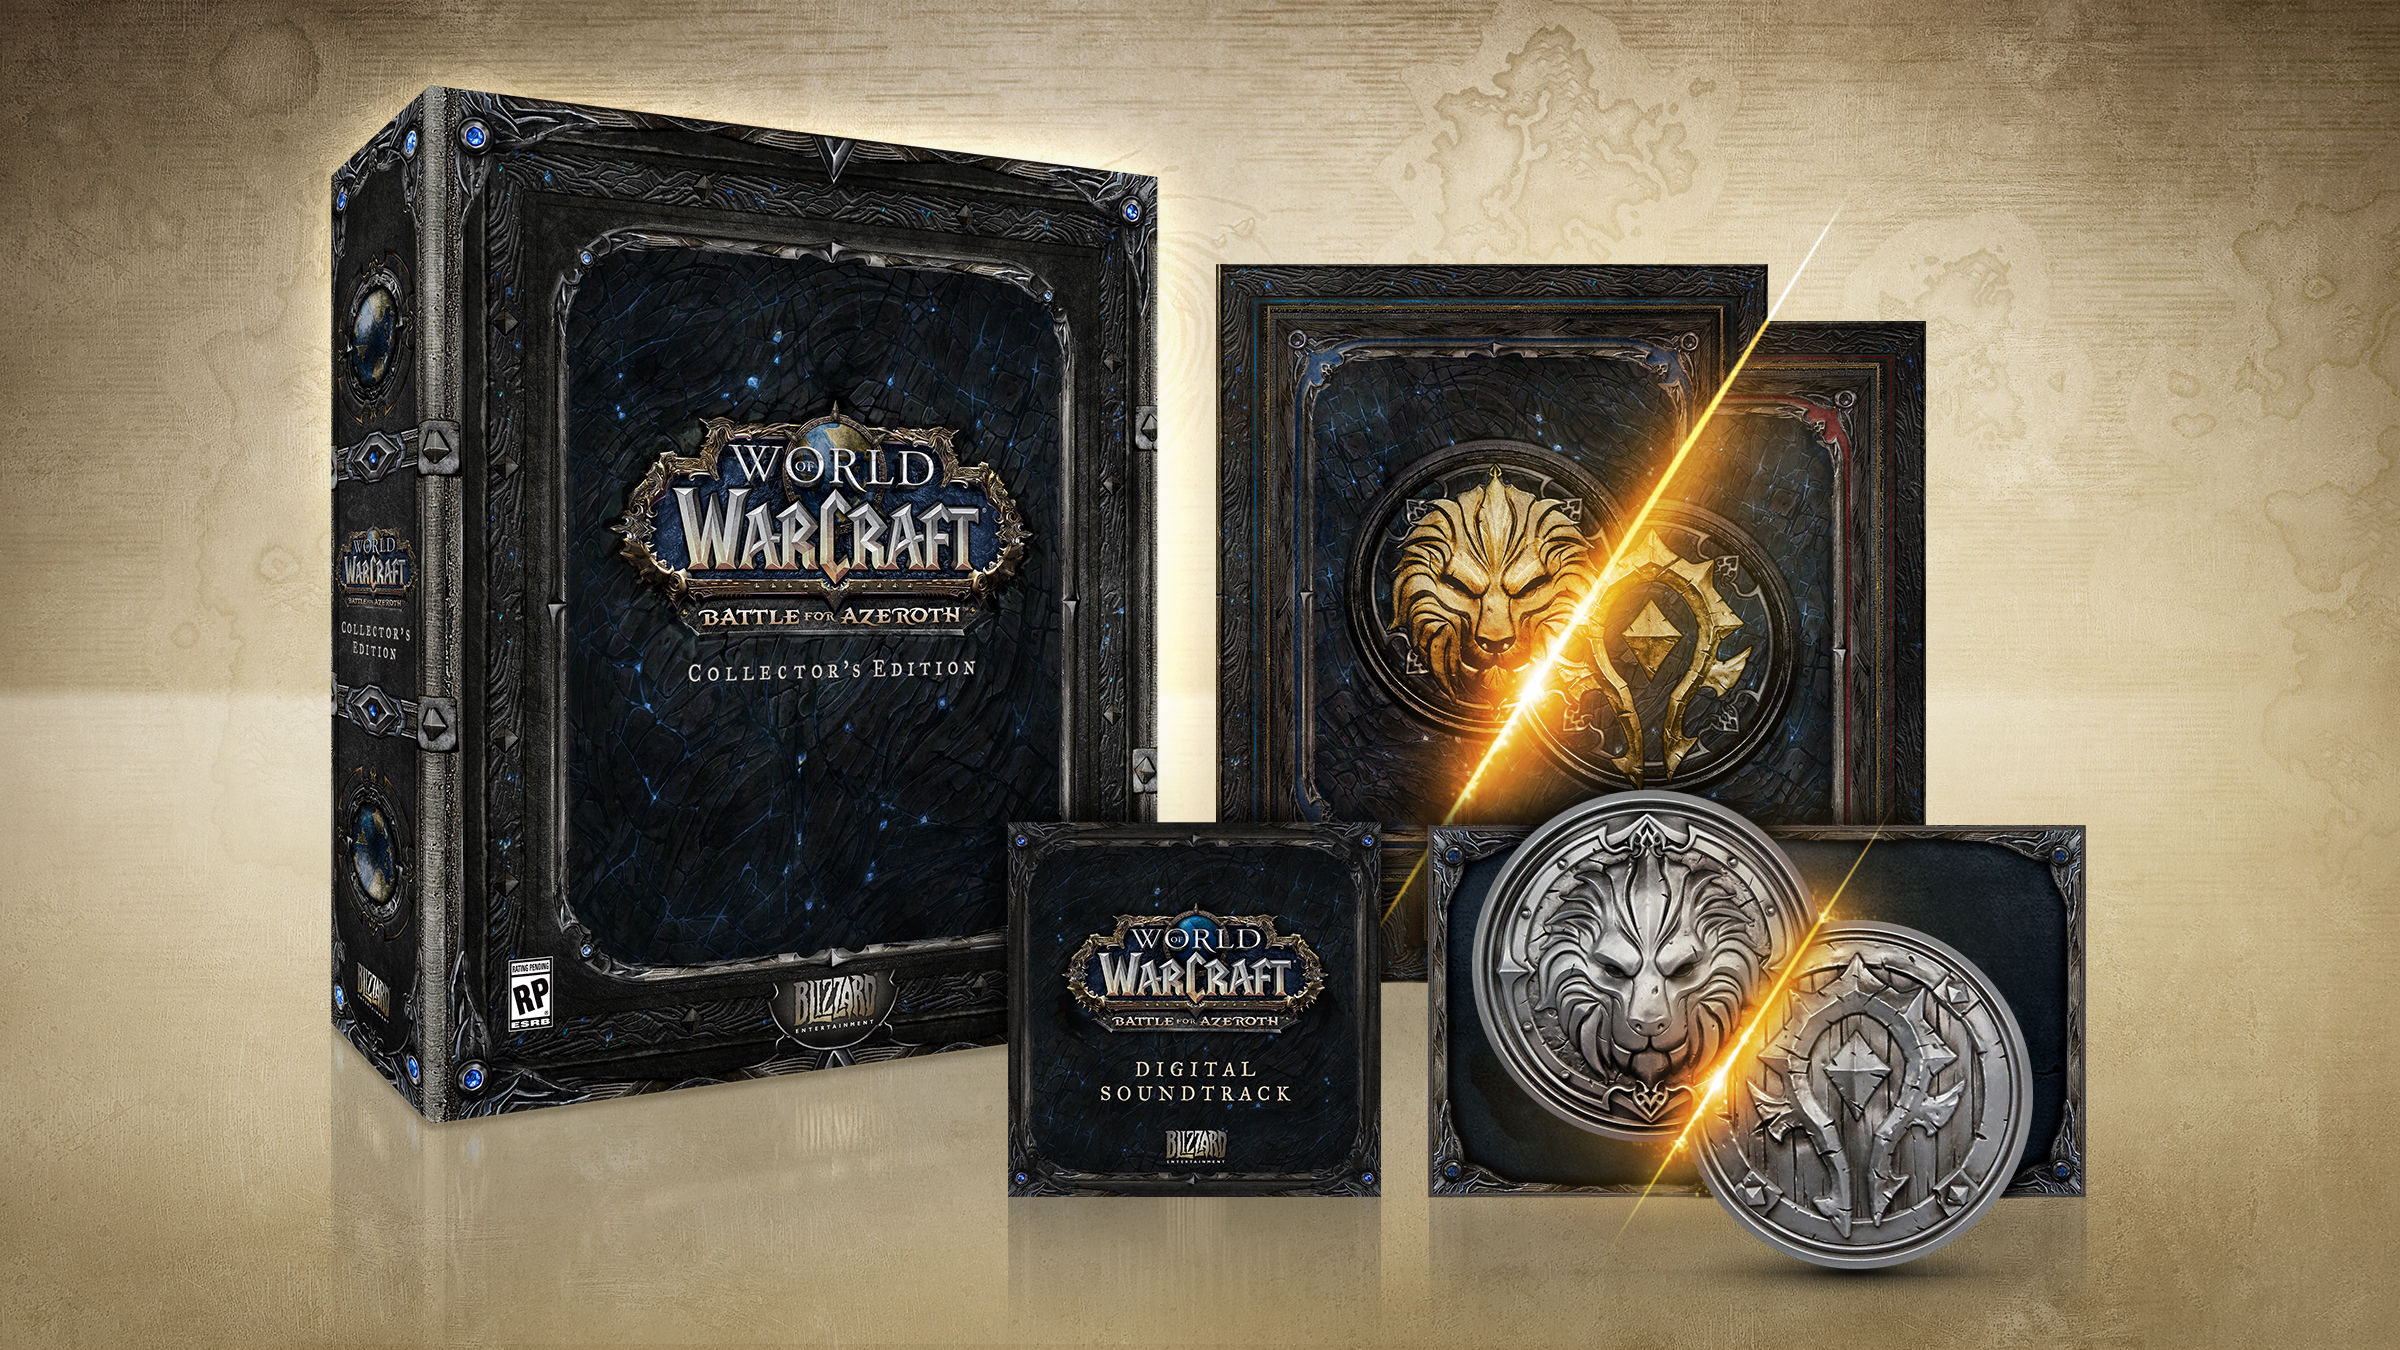 World of Warcraft Battle for Azeroth Collector's Edition